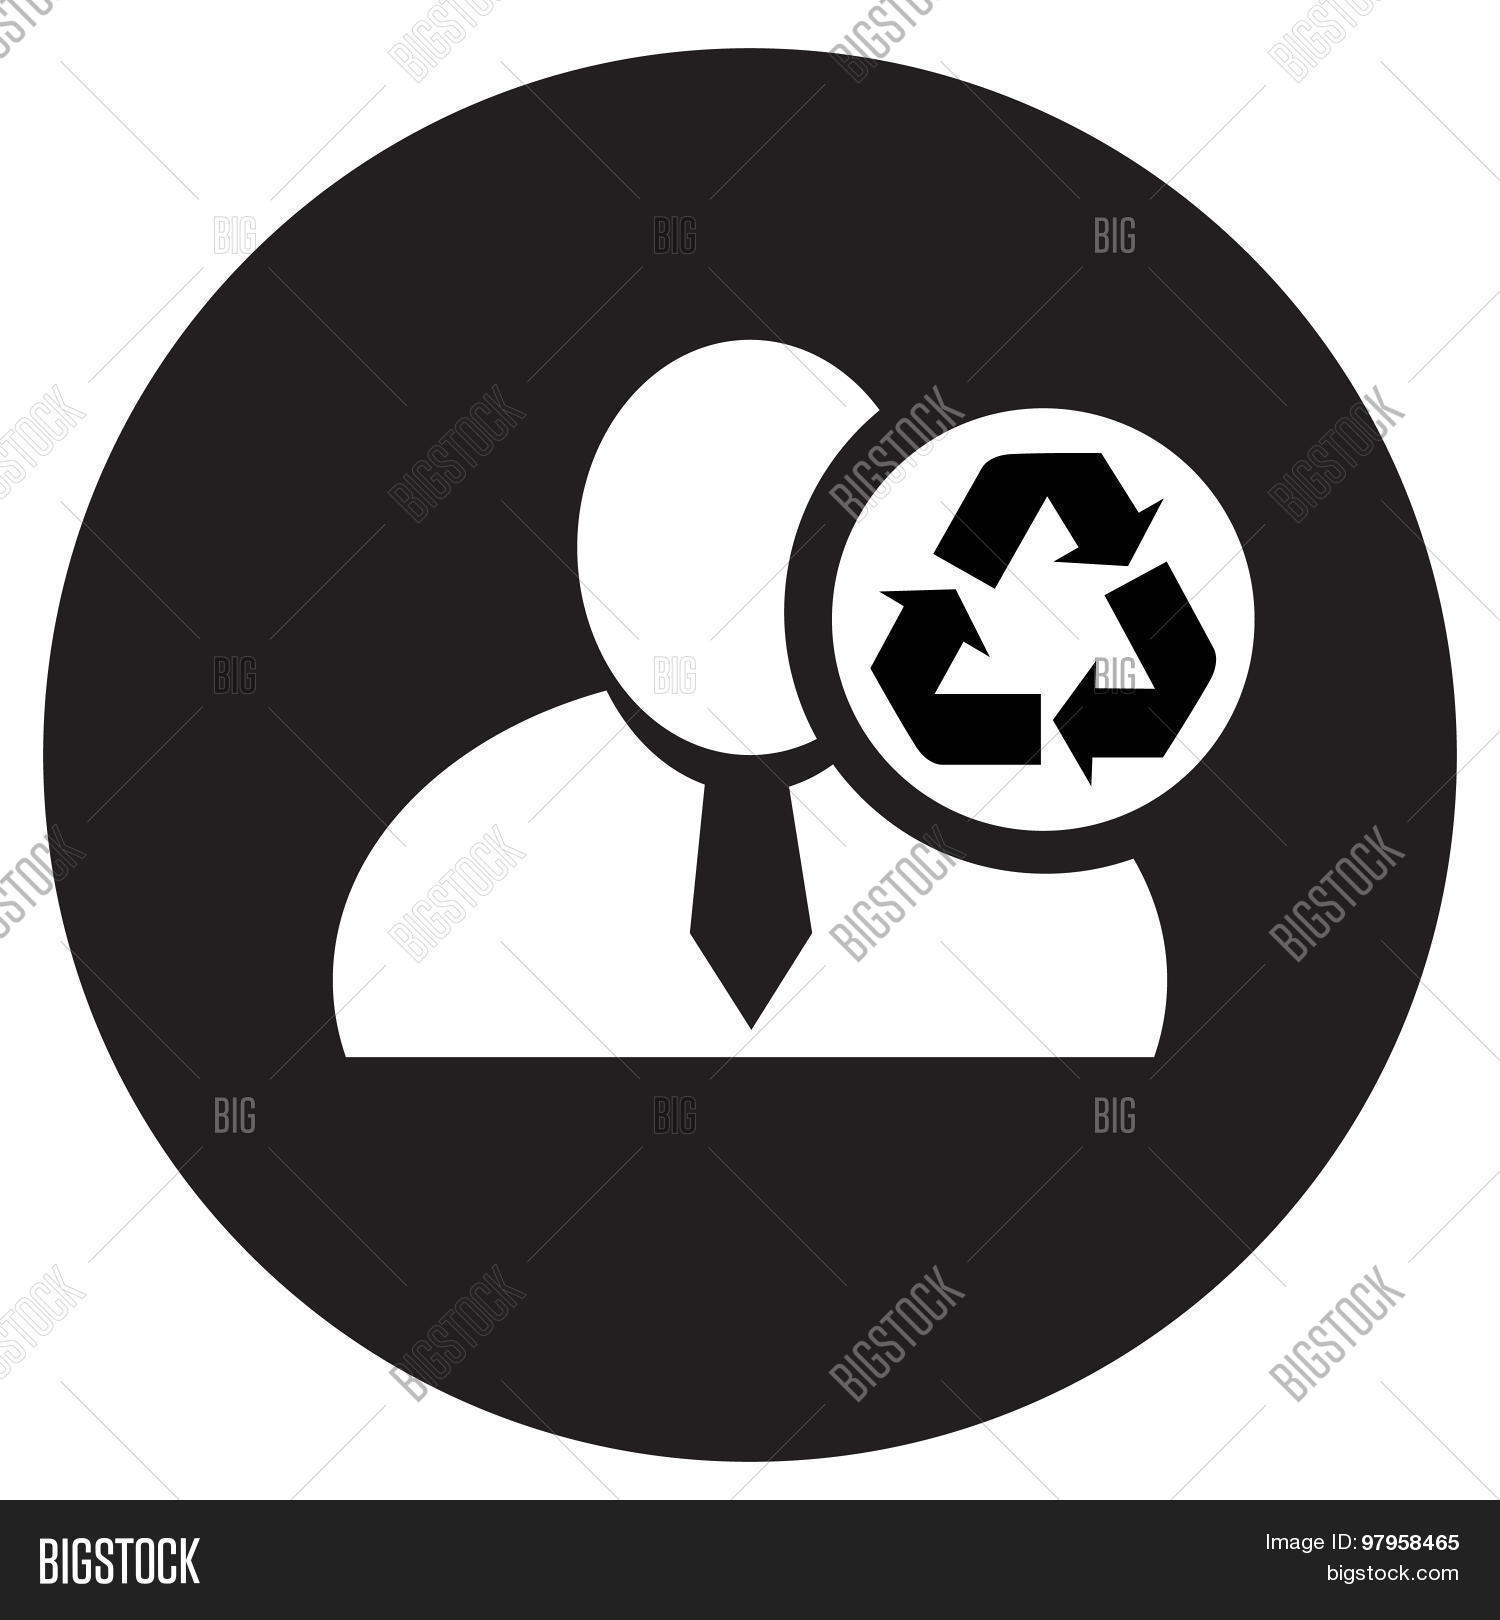 White man silhouette icon recycle vector photo bigstock white man silhouette icon with recycle symbol in an information circle flat design icon in buycottarizona Choice Image